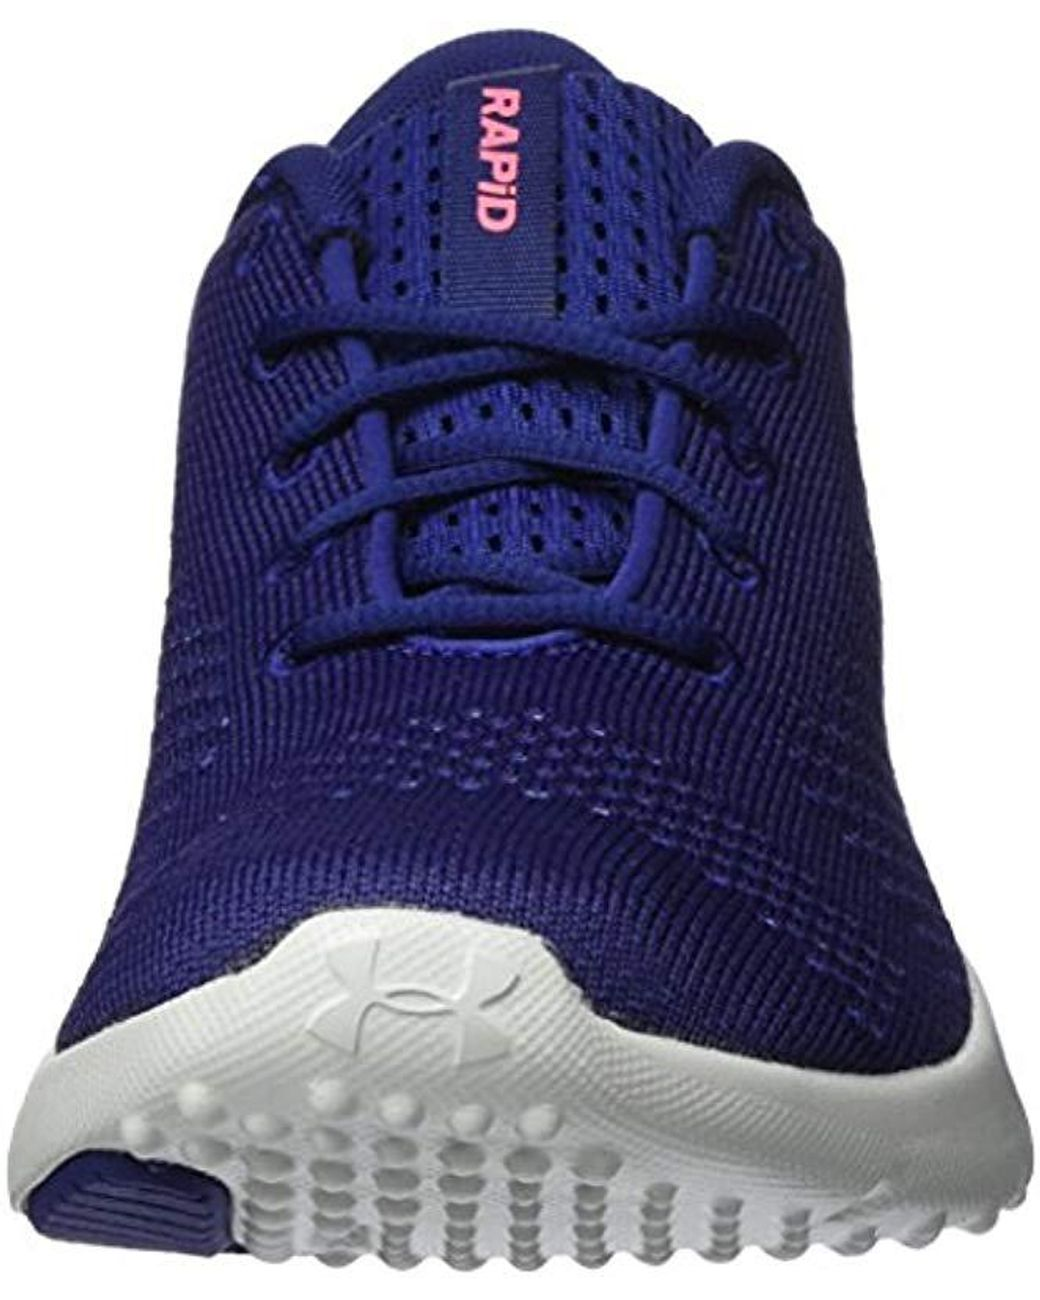 Under Armour Rubber Ua W Rapid, Competition Running Shoes